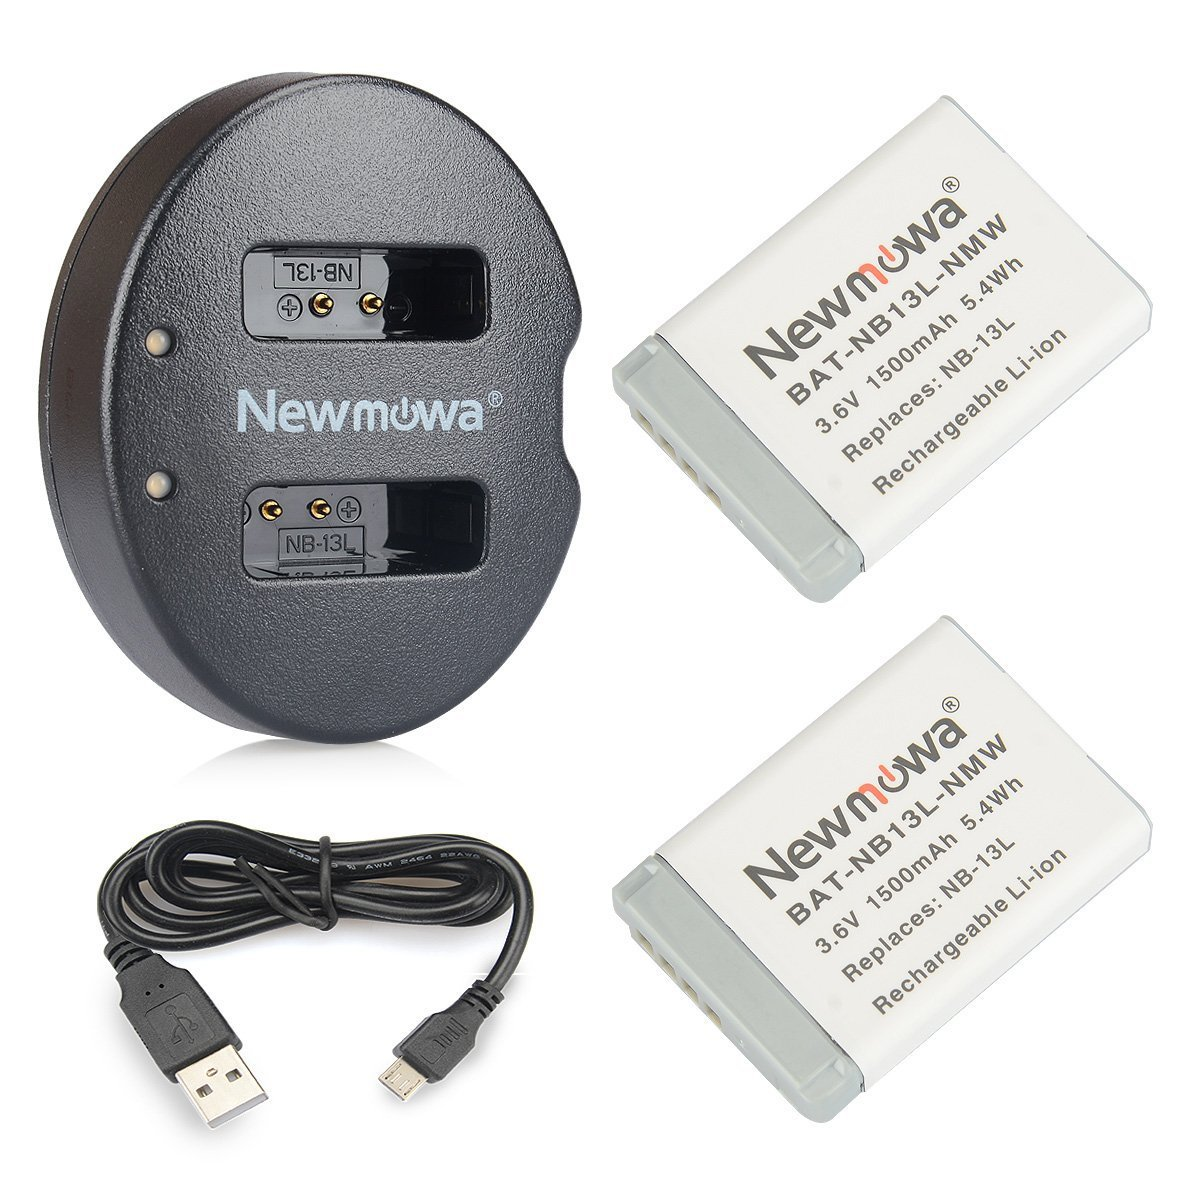 NB-13L Newmowa Replacement Battery (2 Pack) and Dual USB Charger for Canon NB-13L and PowerShot G5X, G7X, G7 X Mark II, G9X, G9 X Mark II, G1 X Mark III, SX620 HS, SX720 HS, SX730 HS